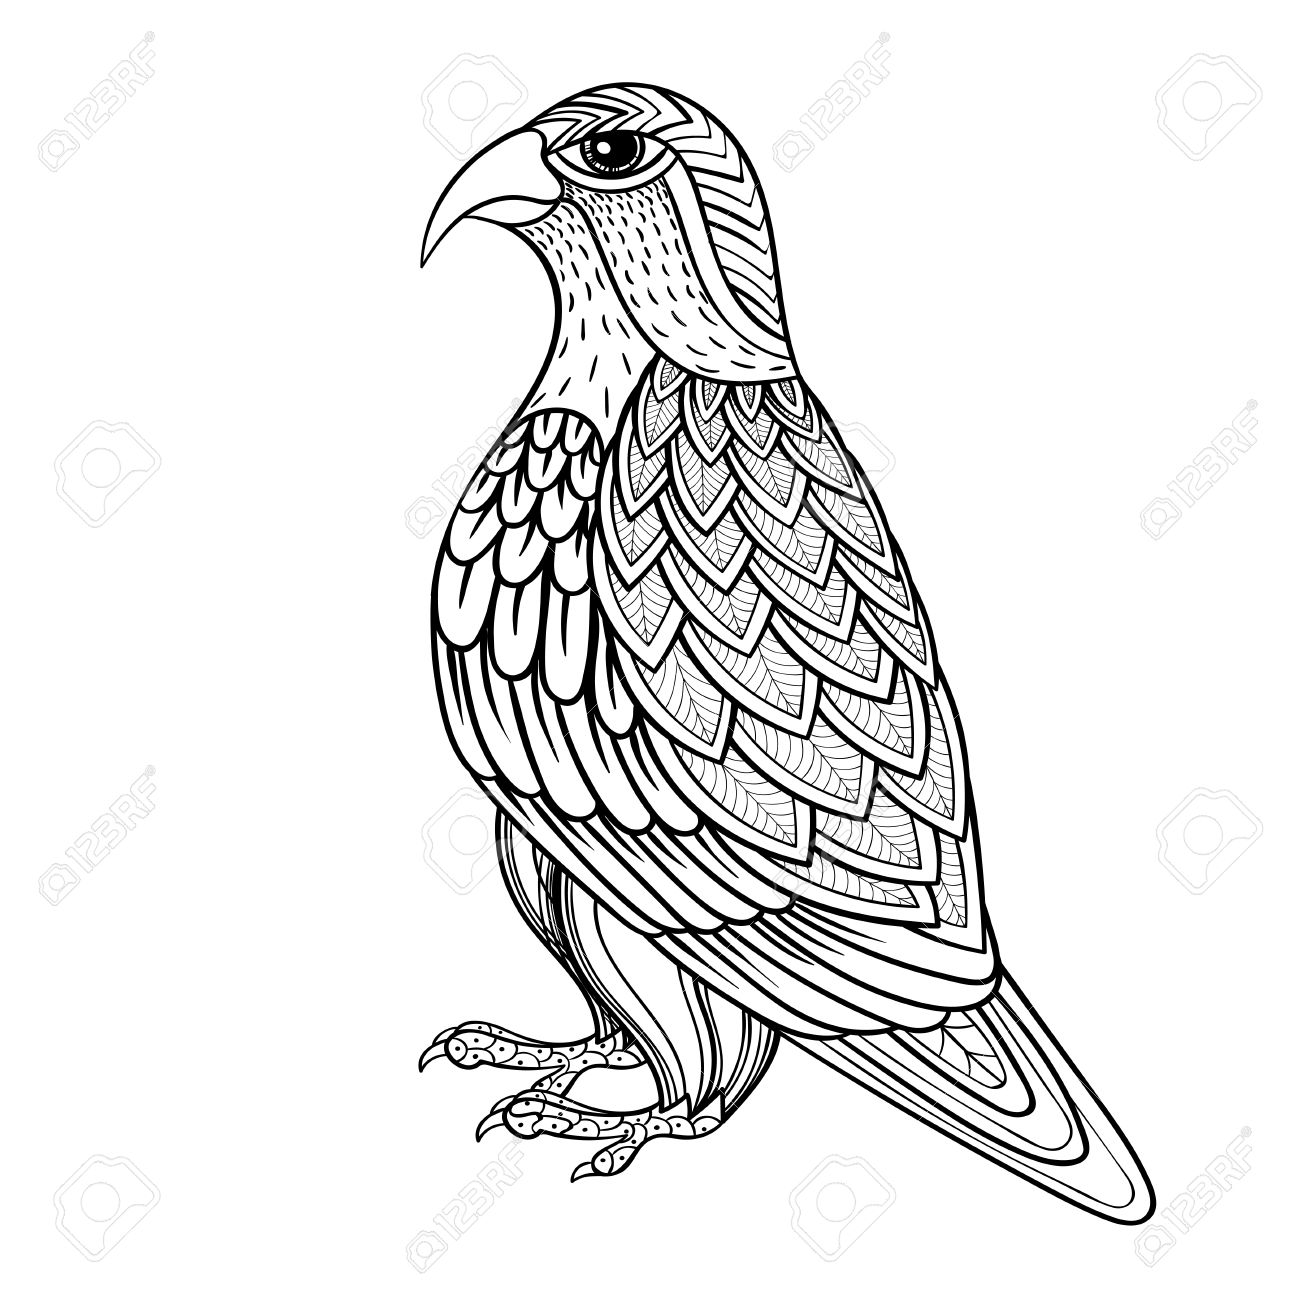 Zentangle Vector Falcon Bird Hawk Of Prey Predatory For Adult